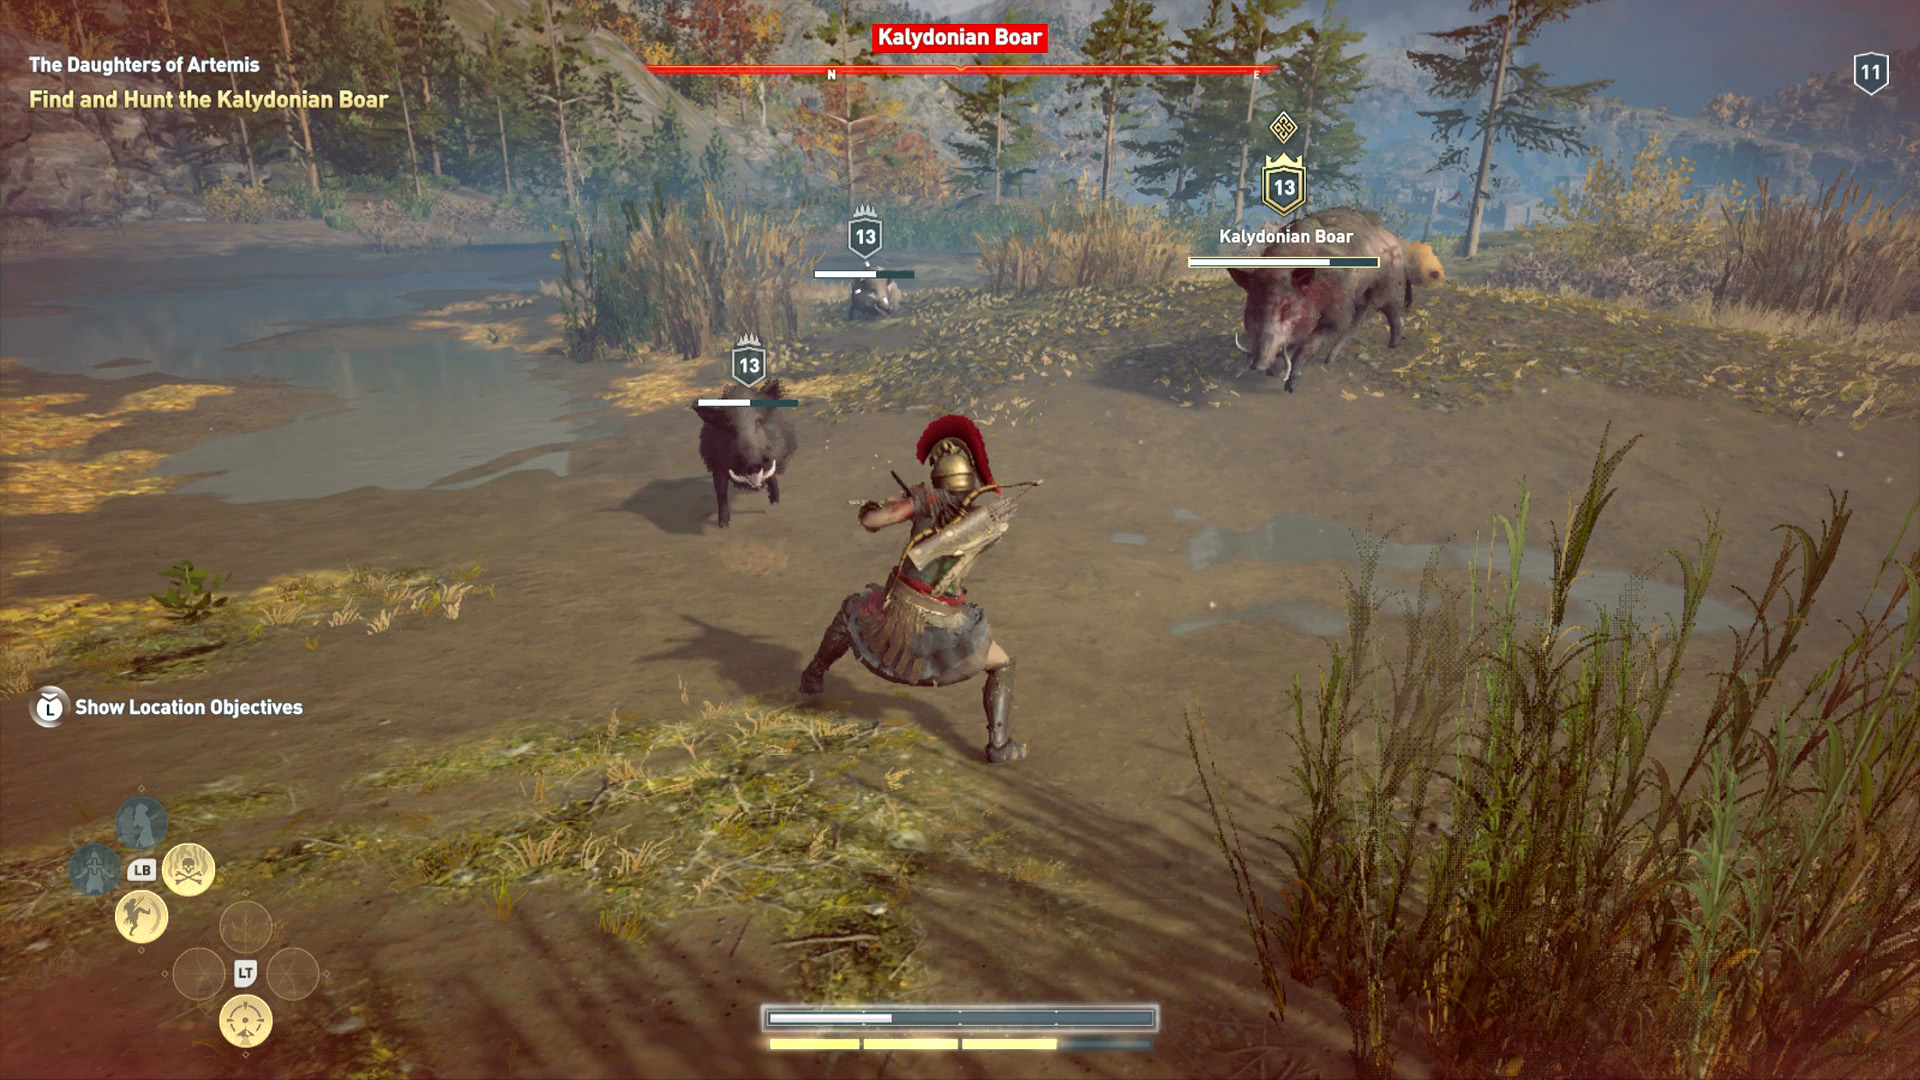 Kassandra is fighting against the Kalydonian Boar and its four smaller boar offspring.